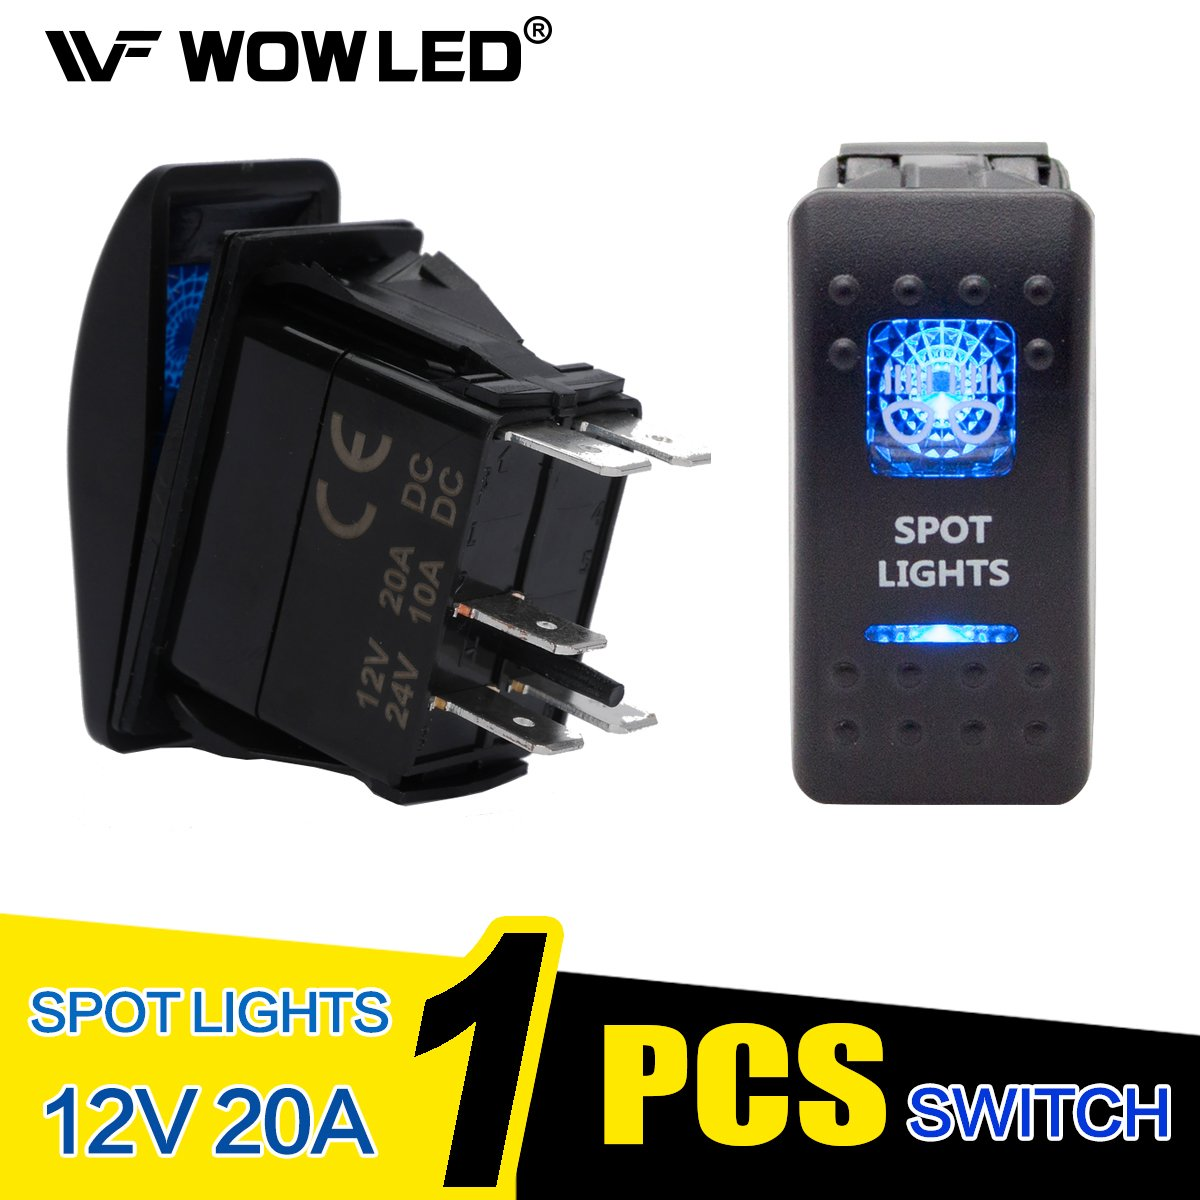 WOWLED Waterproof Zombie Light LED Illuminated Backlit Rocker Switch for Car Truck 4X4 SUV Boat Wow Factor